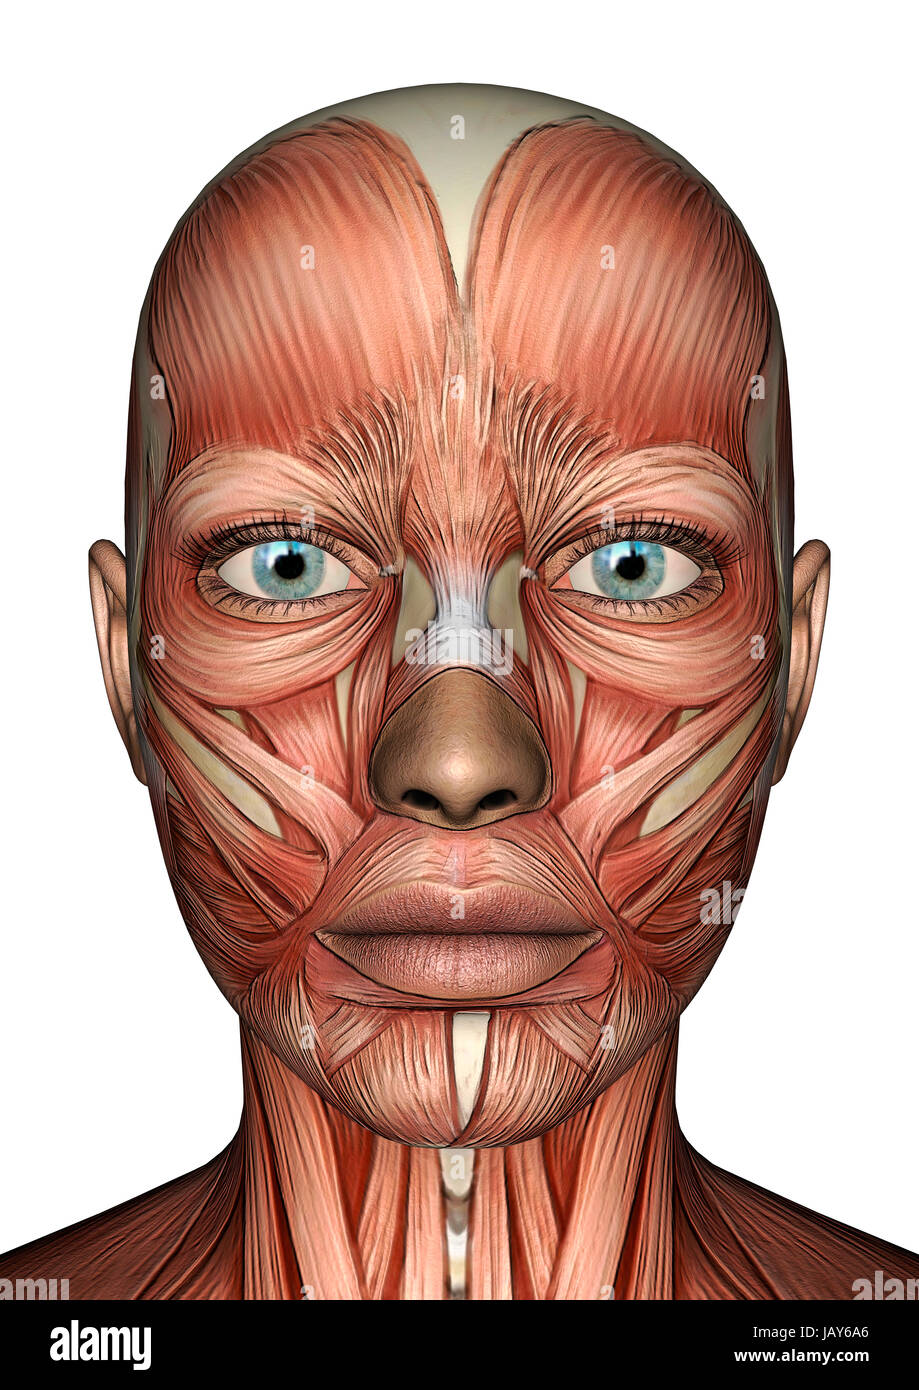 Muscle Anatomy Face Stock Photos Muscle Anatomy Face Stock Images